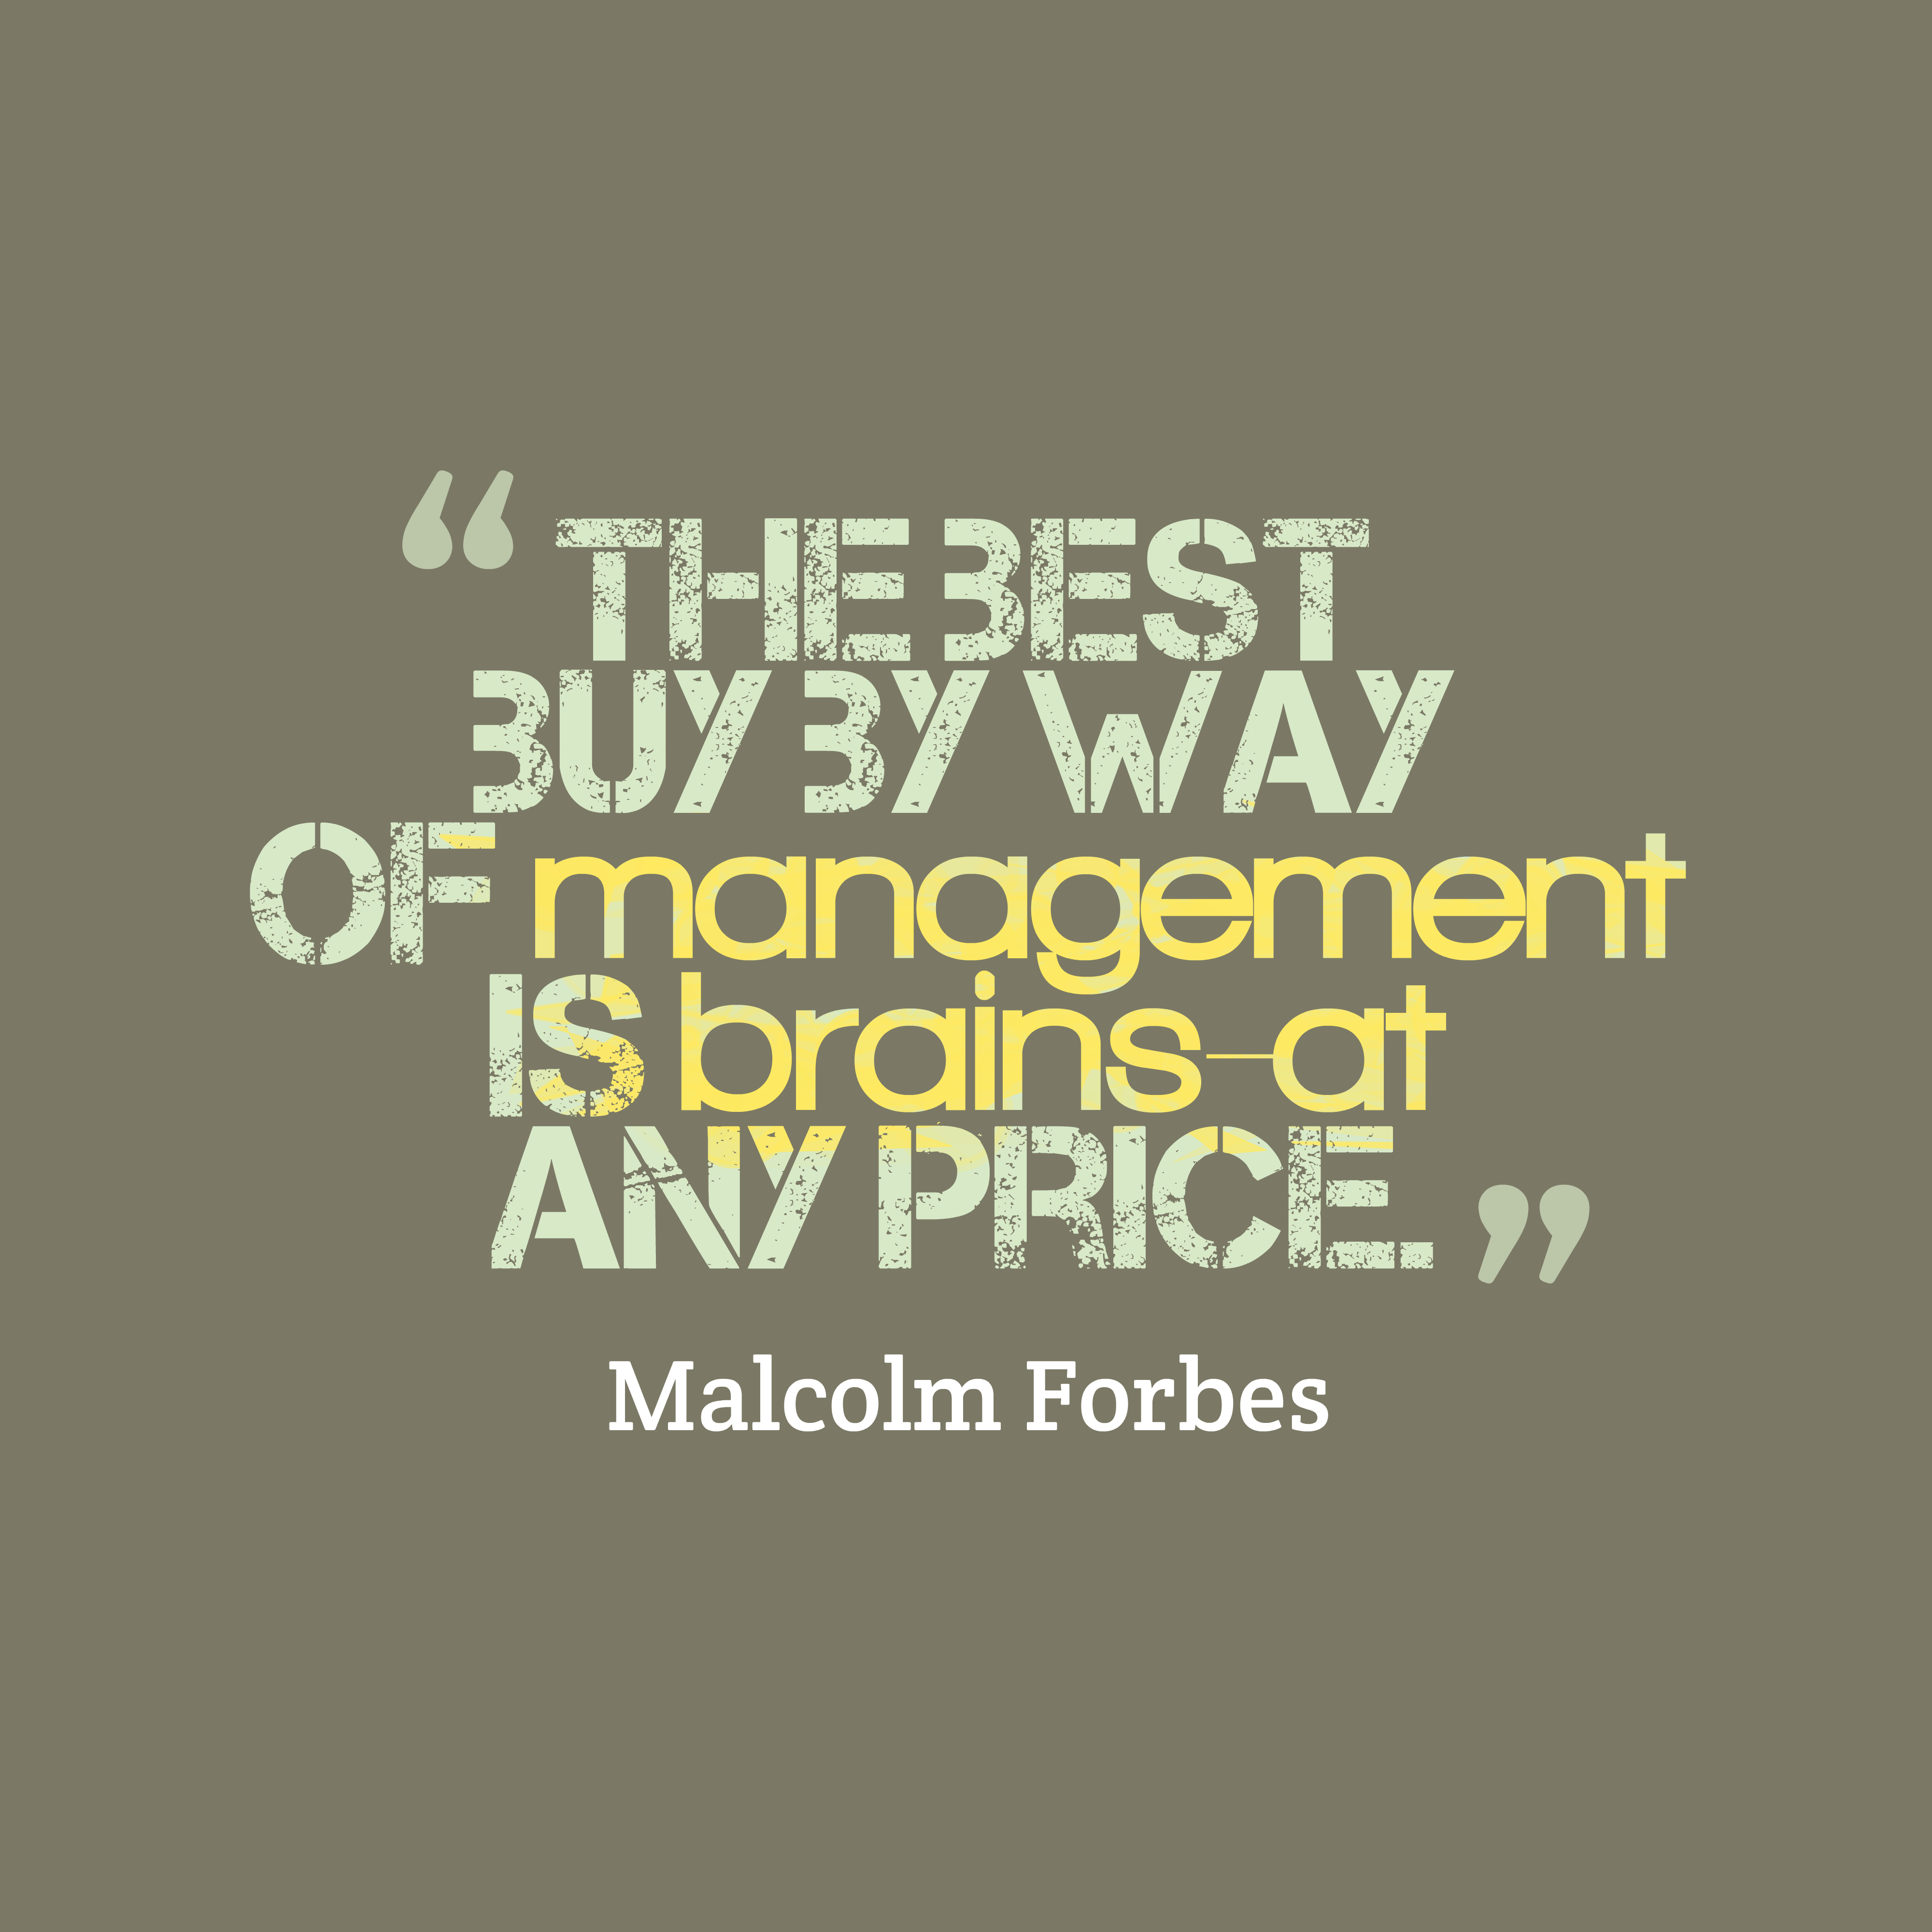 https://quotescover.com/wp-content/uploads/The-best-buy-by-way__quotes-by-Malcolm-Forbes-45.png